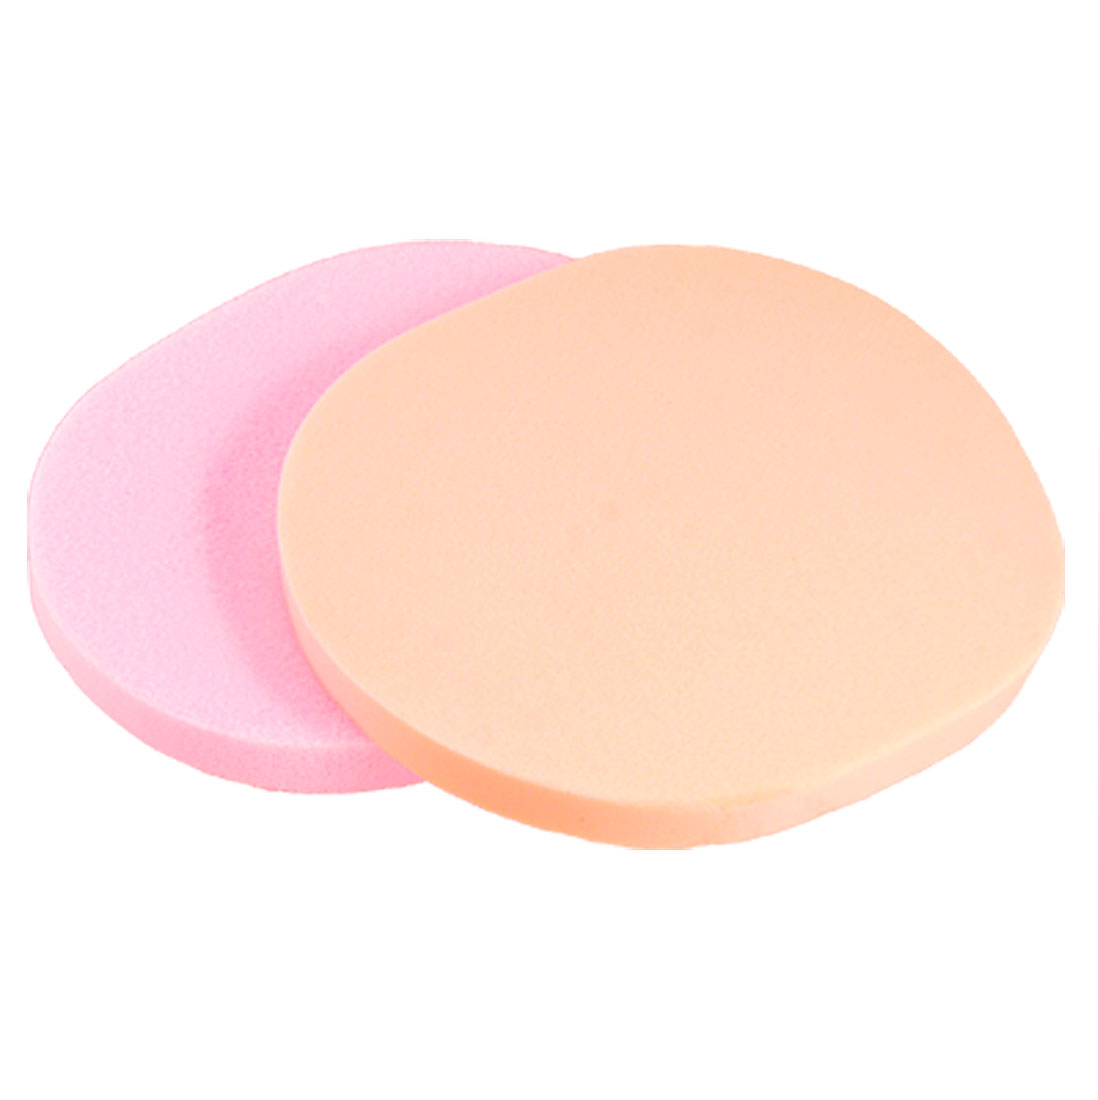 2 Pcs Makeup Washing Face Pure Color Sponge Powder Puff for Lady